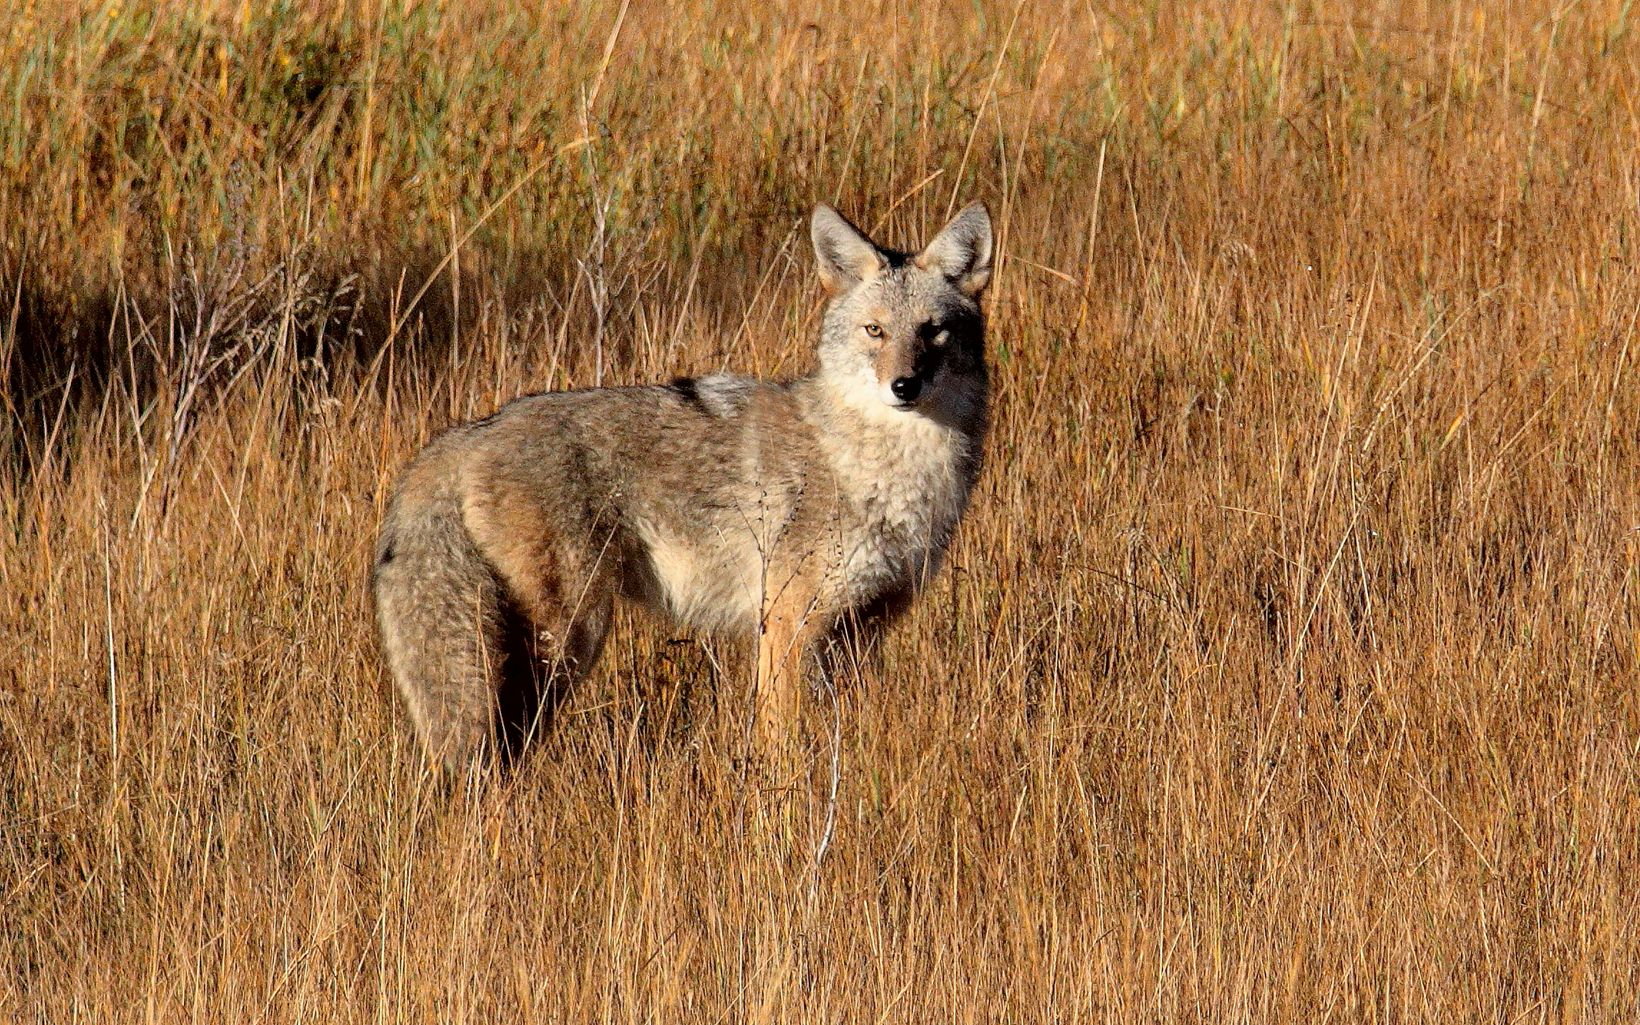 Coyote spotted at Ball Creek Preserve